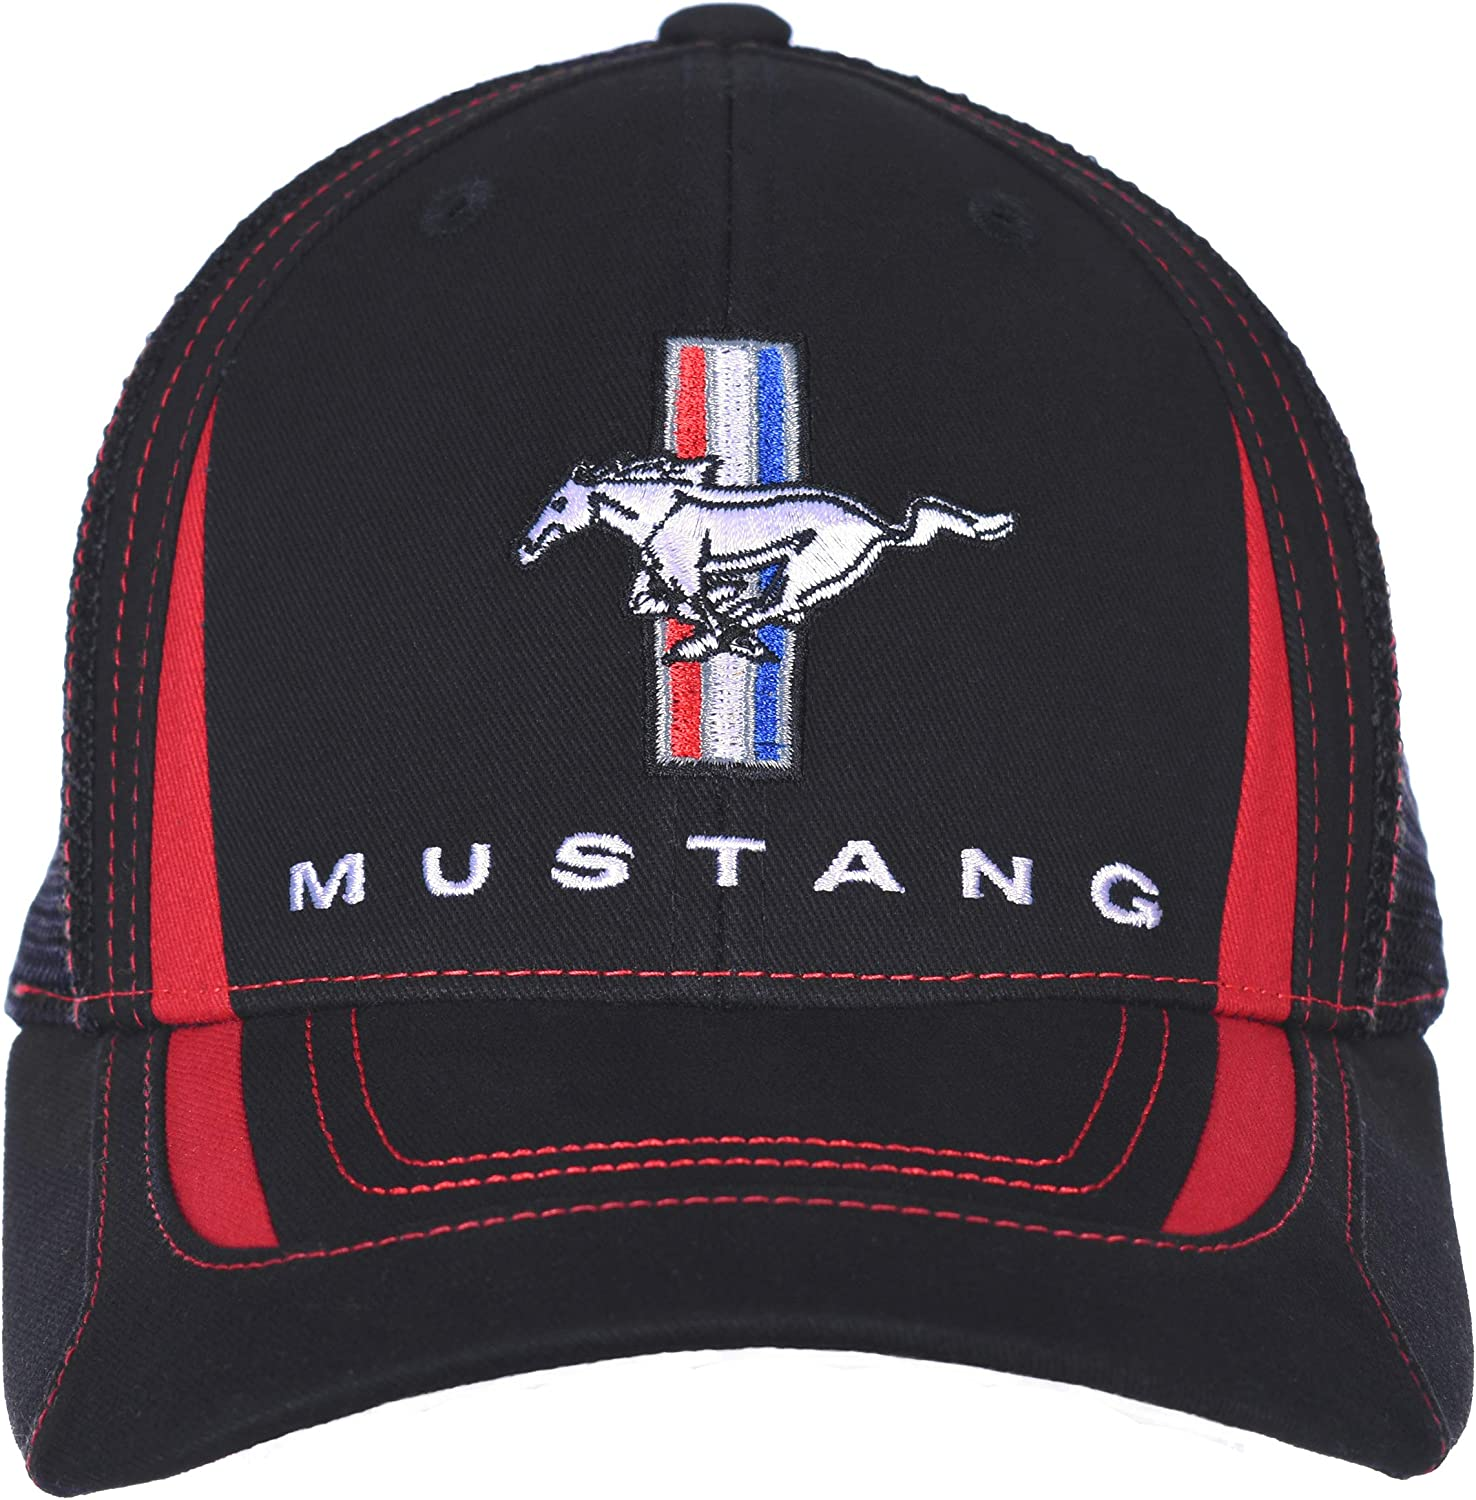 Checkered Flag Outlet sale feature Men's Ford Mustang Trucker Many popular brands Black H Cap Adjustable